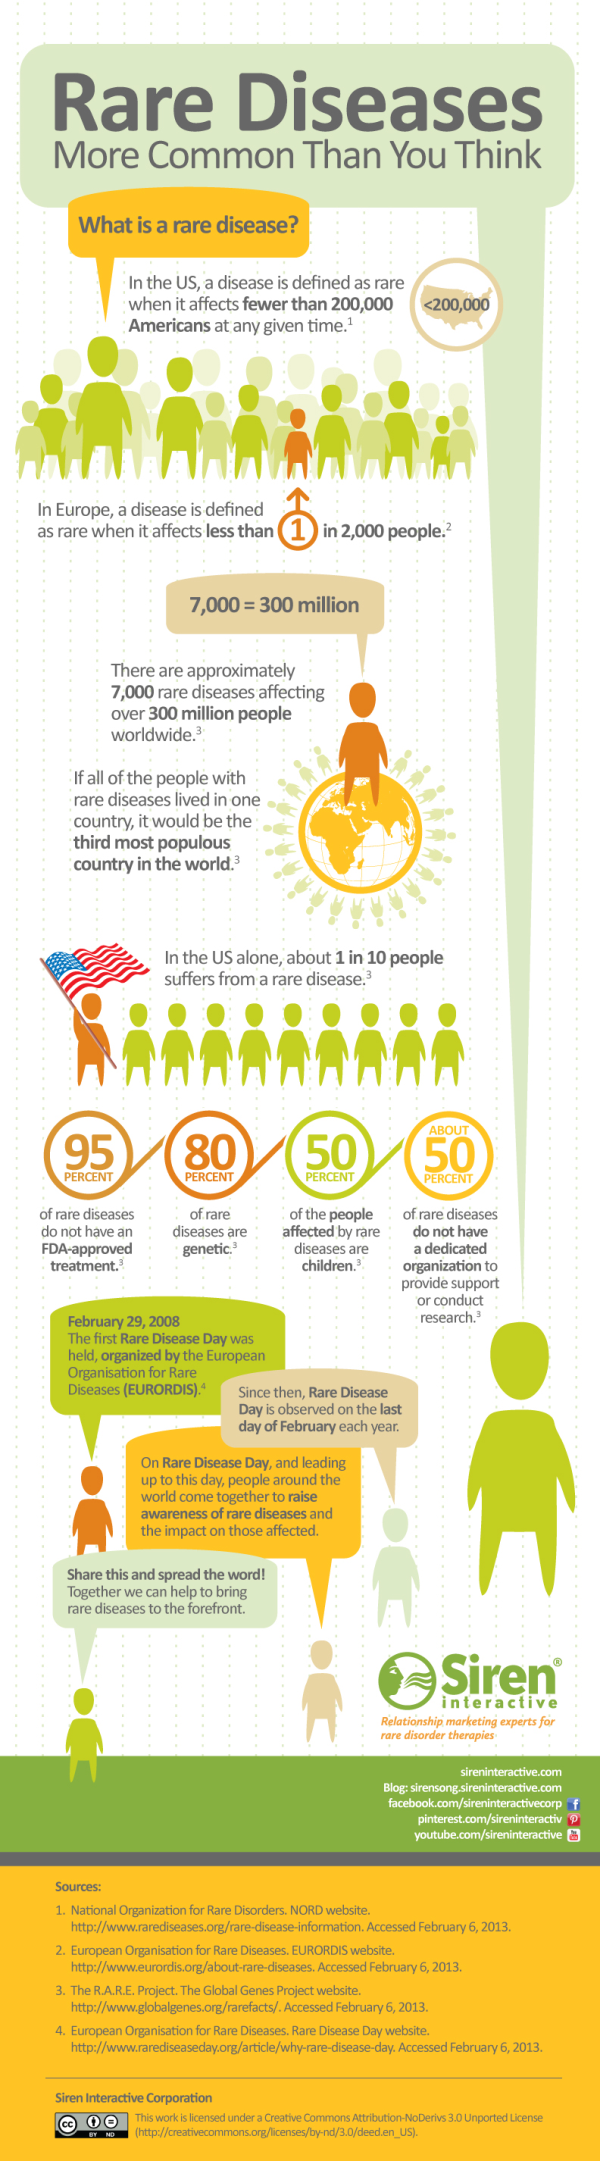 Rare Disease Infographic resized 600